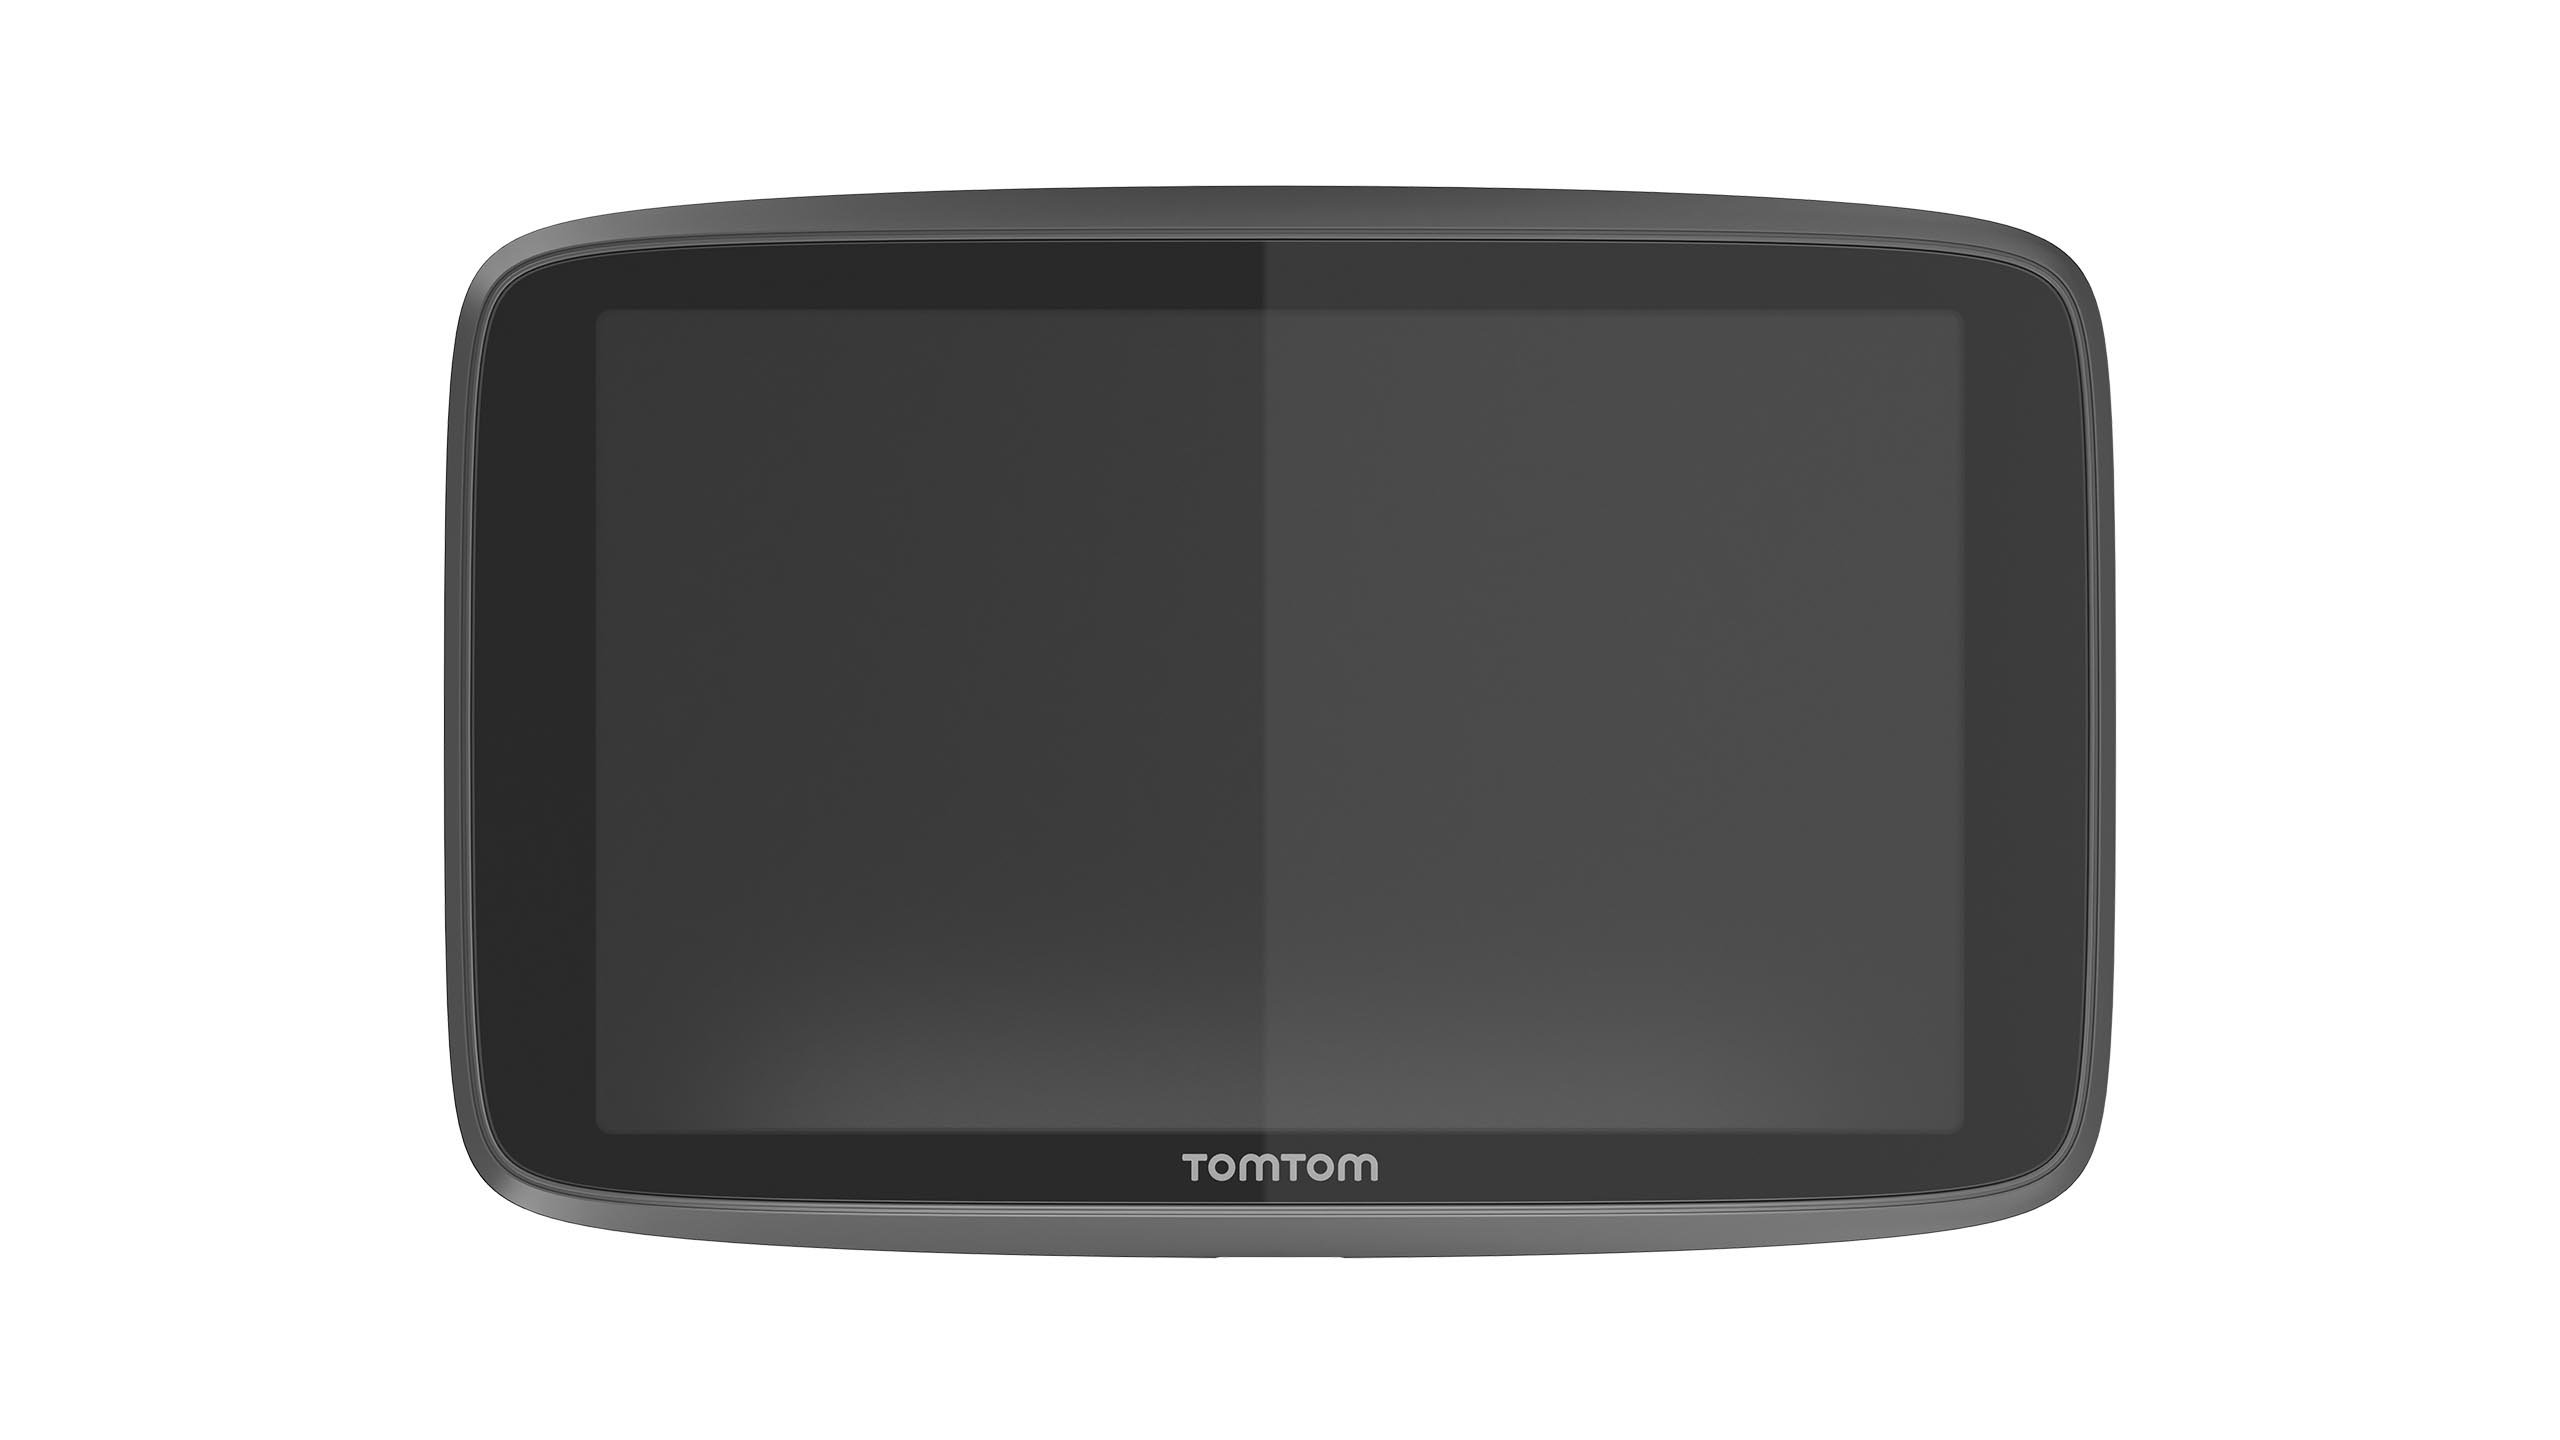 TomTom GO Camper World Navi 6'' lebenslang Karten-Updates Wi-Fi Bluetooth 16GB für 319,00 Euro